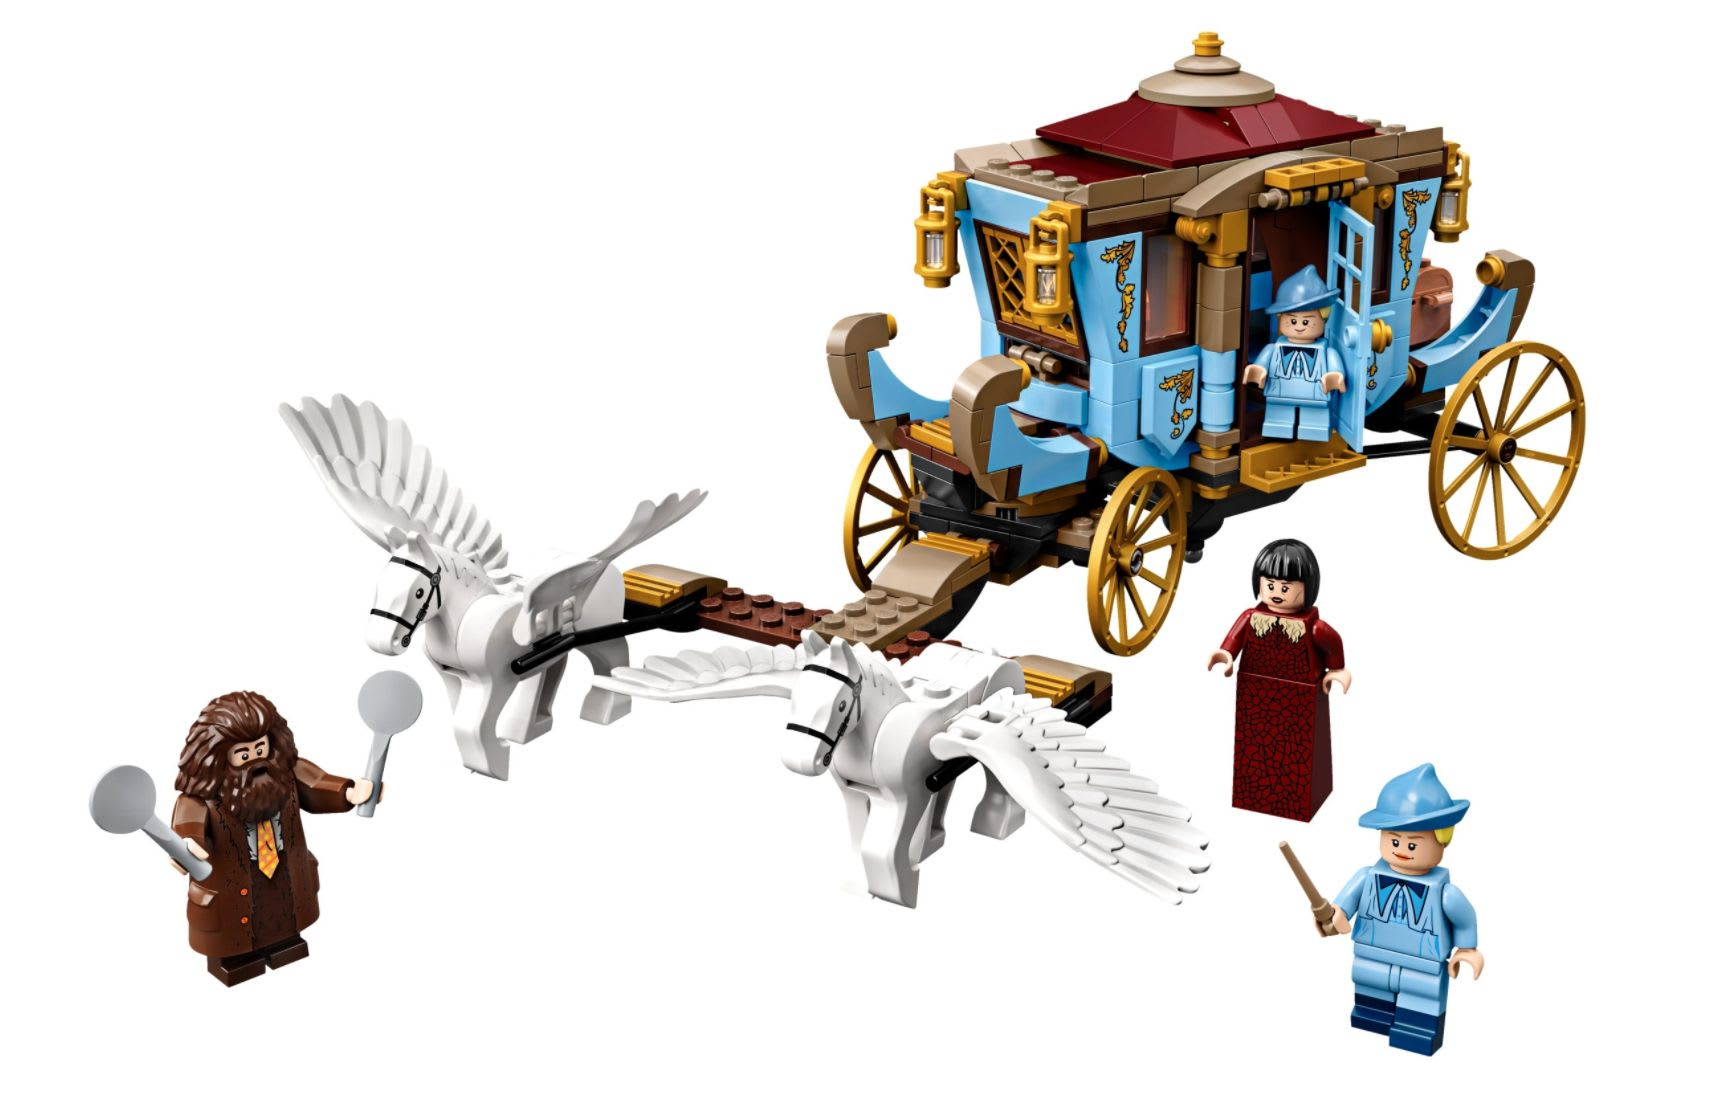 Discover the LEGO Harry Potter Beauxbatons' Carriage: Arrival at Hogwarts set available at LEGO.